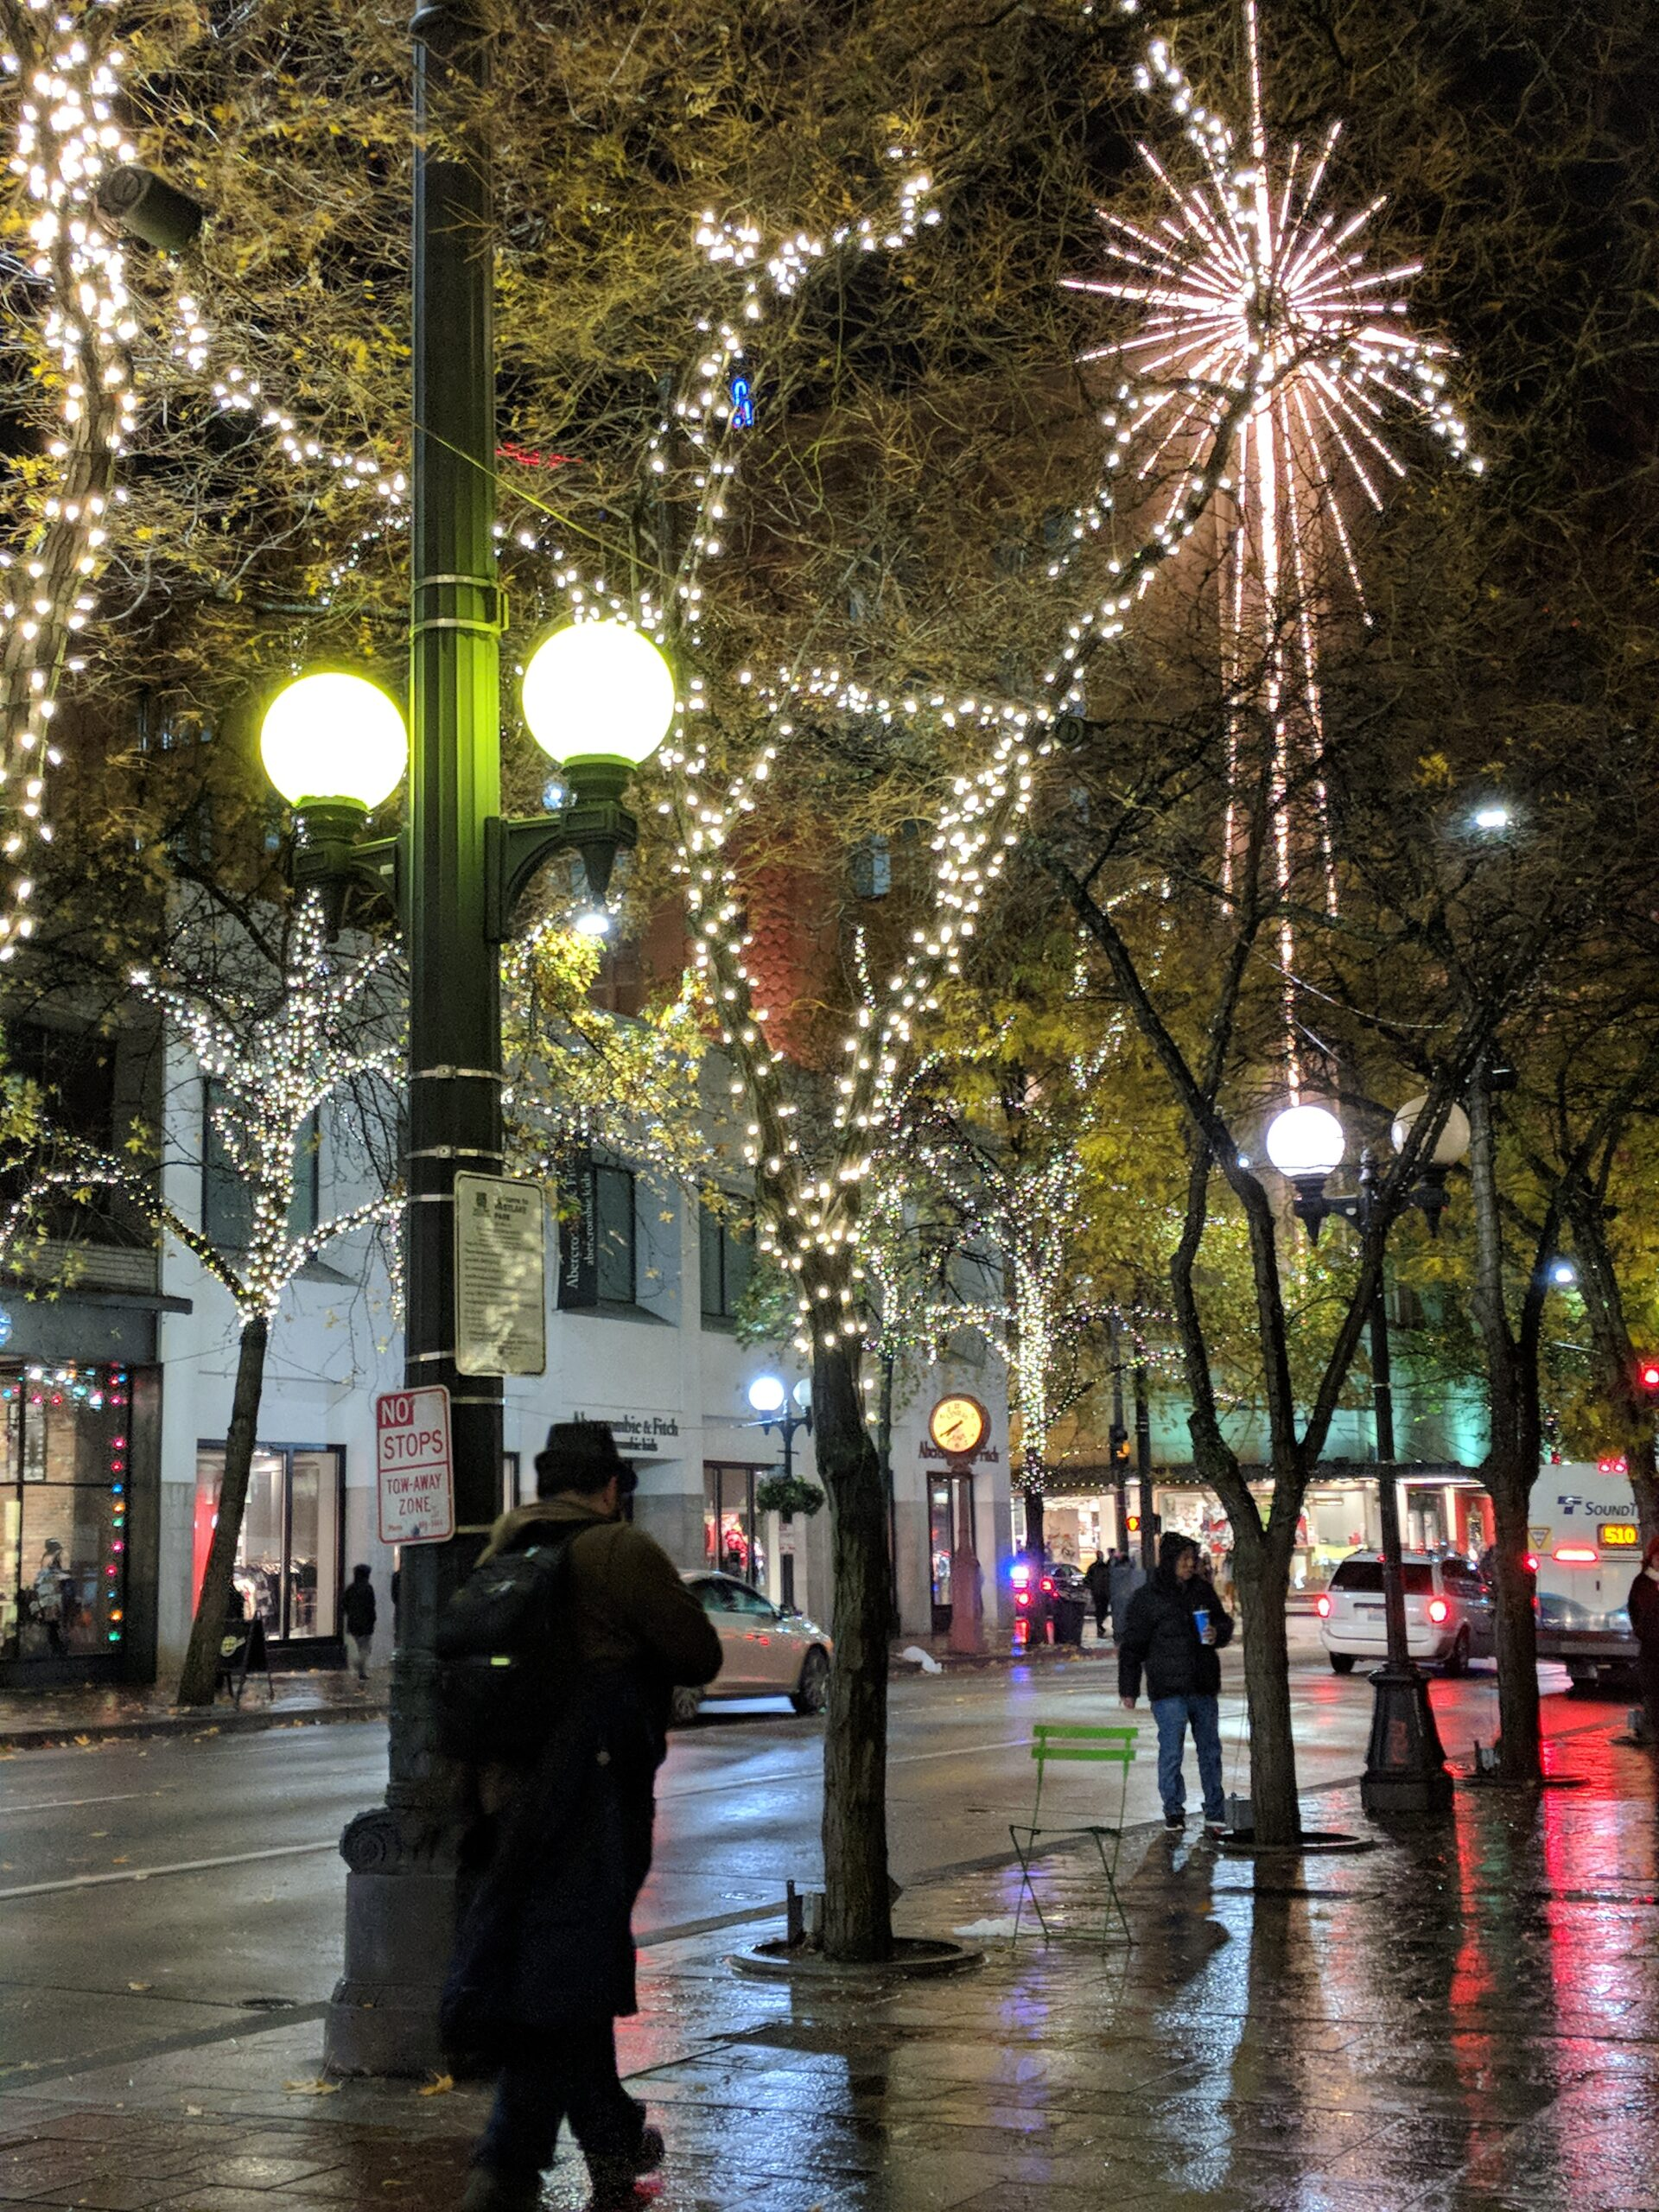 Christmas lights in downtown seattle.